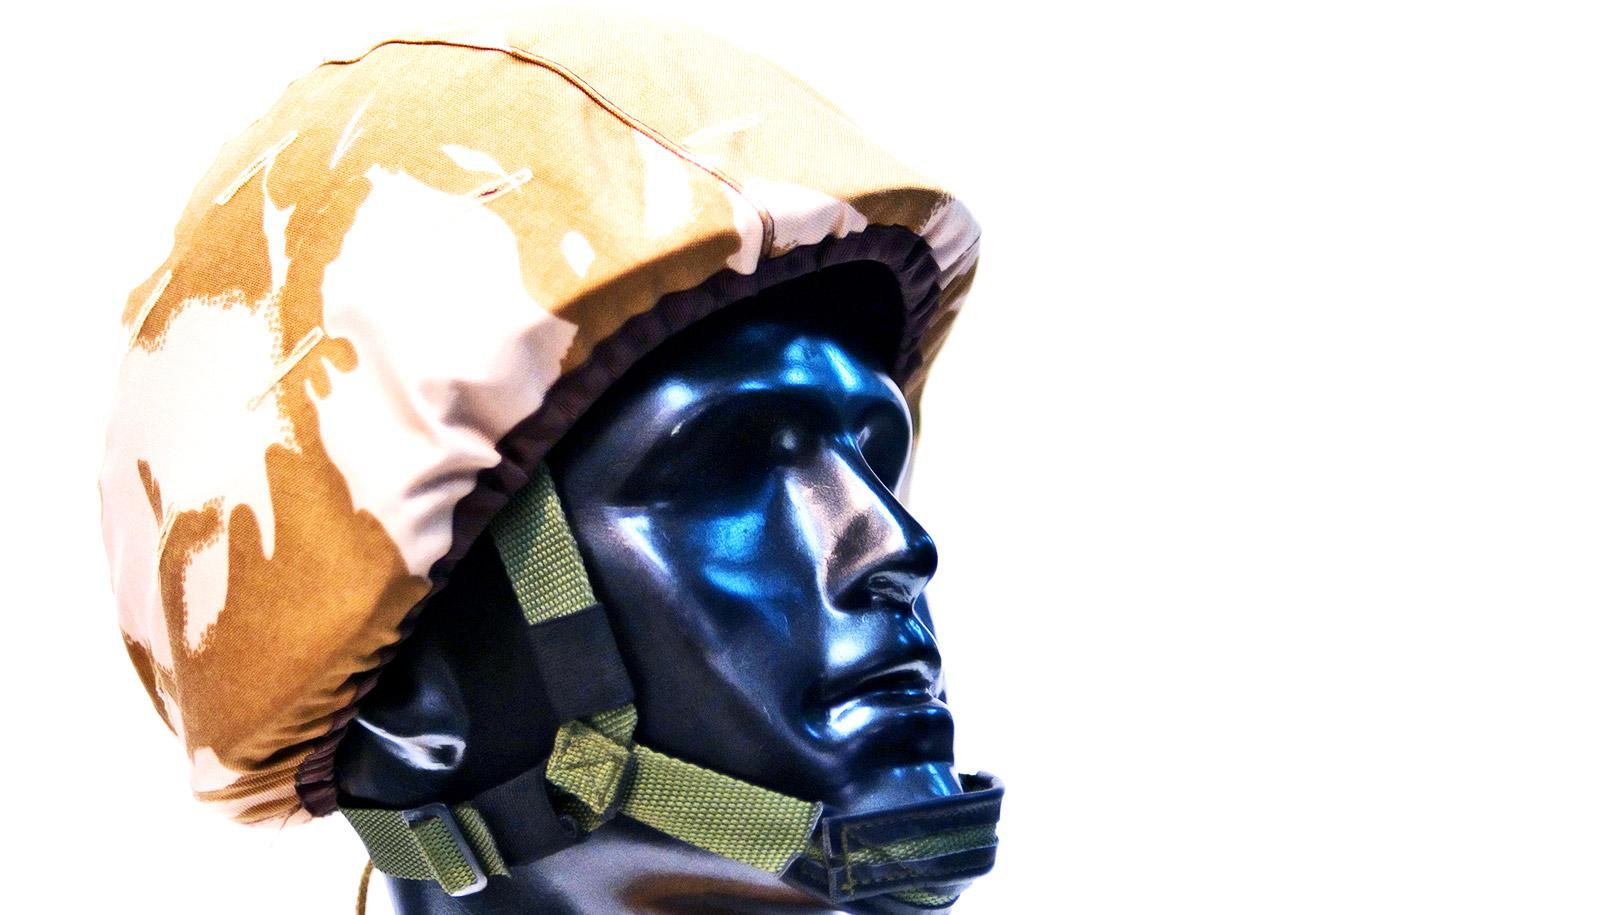 A mannequin wears a military-style helmet against a white background